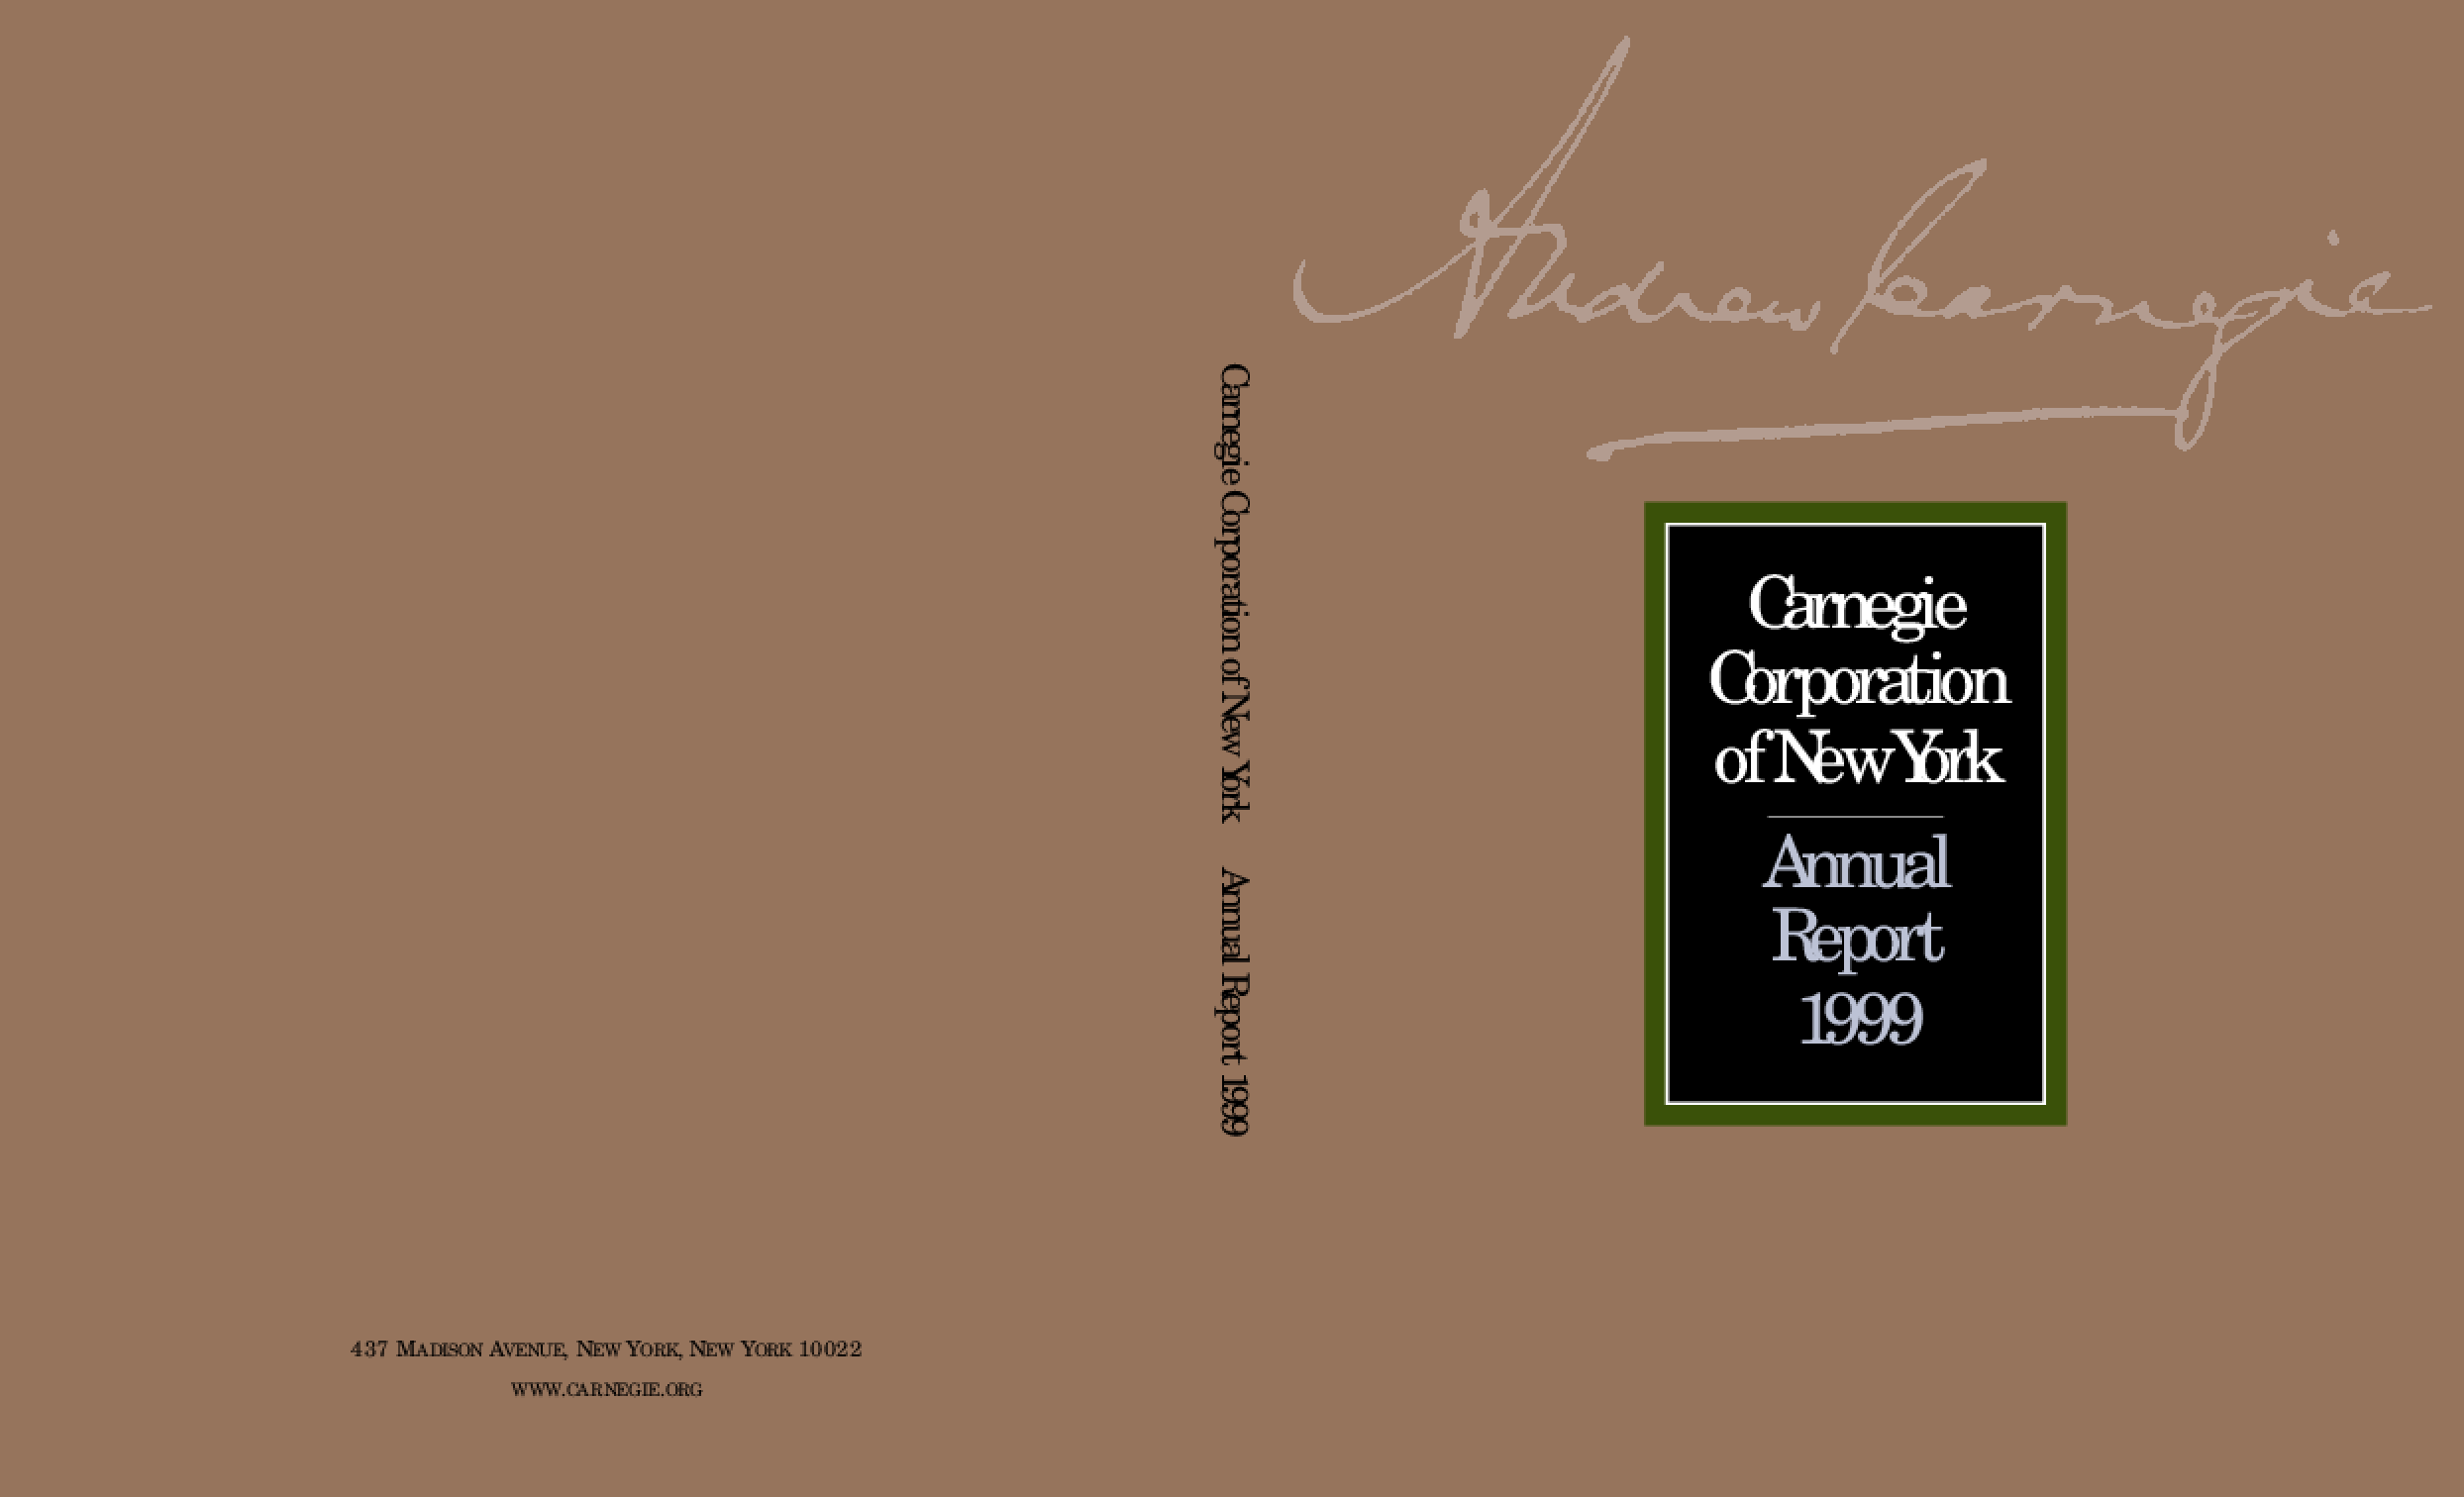 Carnegie Corporation of New York - 1999 Annual Report